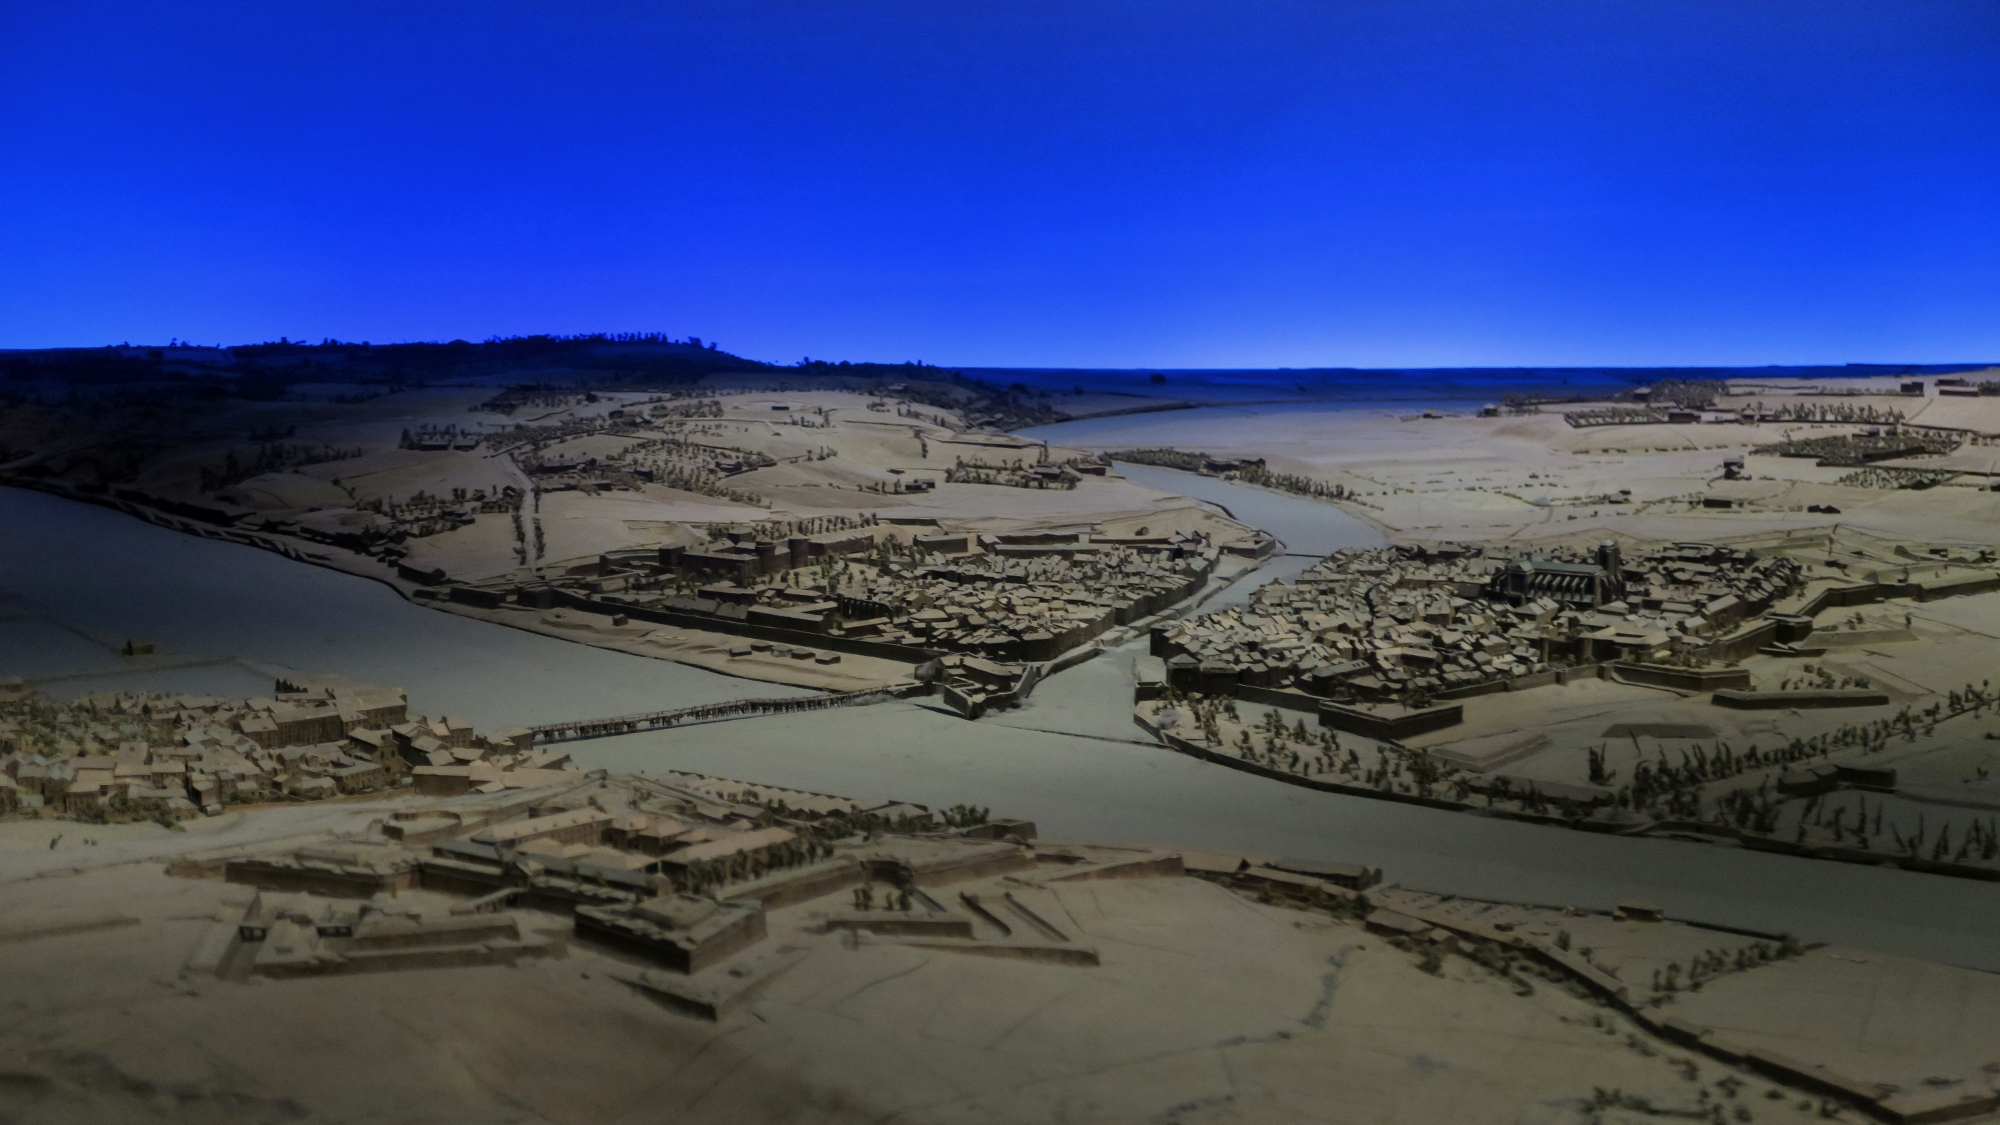 Relief Model of Bayonne, now in Les Invalides